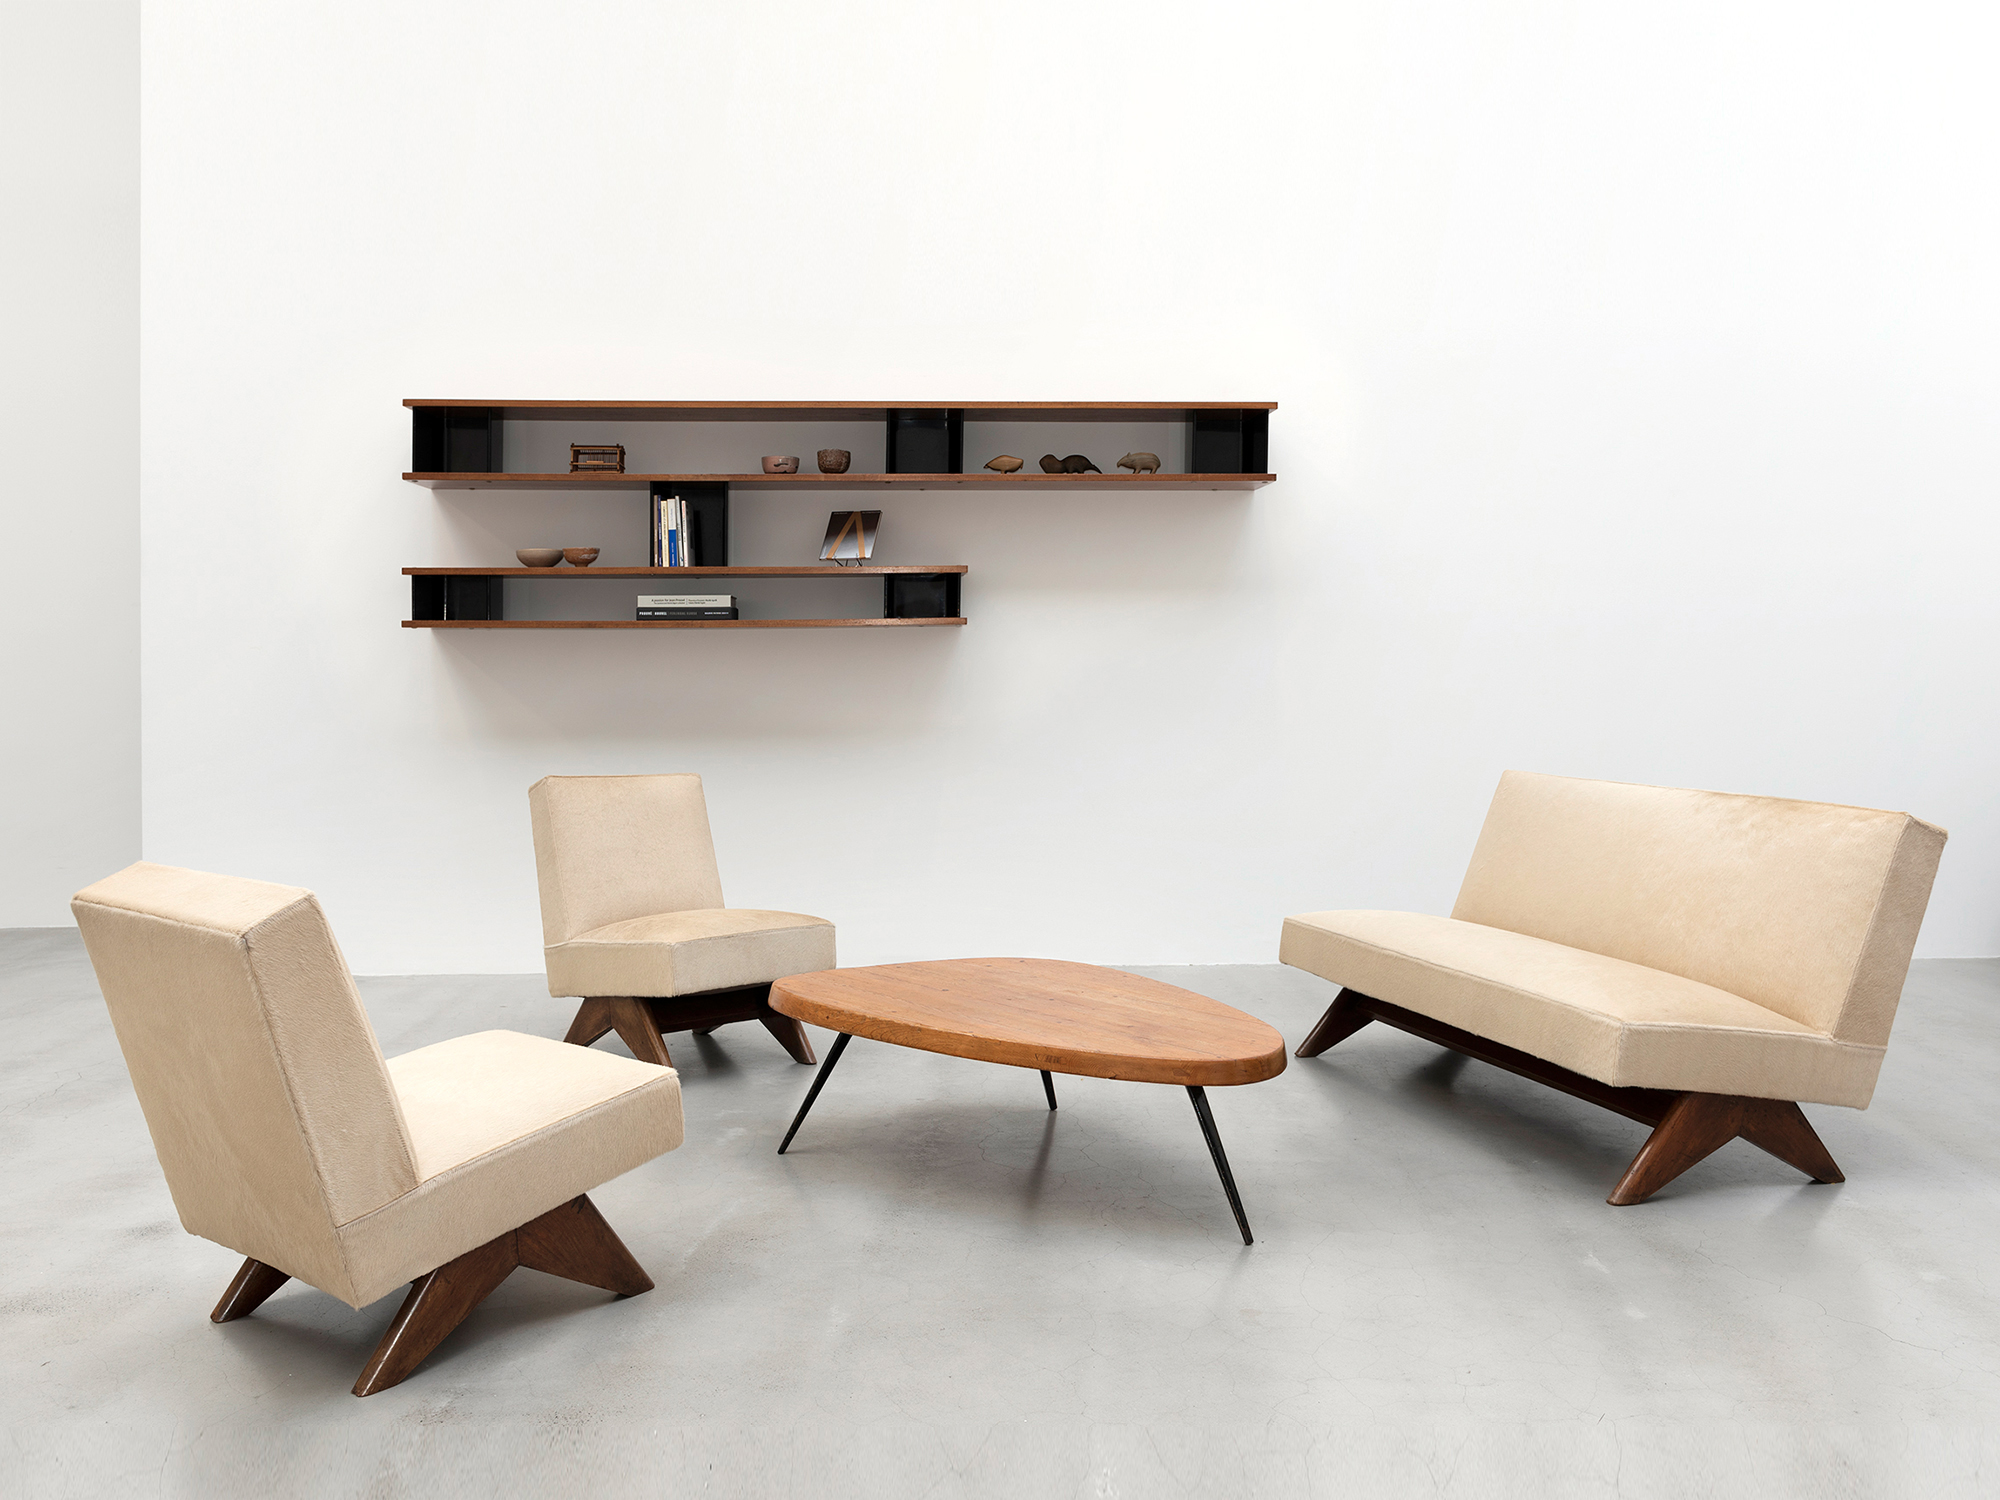 PIERRE JEANNERET & CHARLOTTE PERRIAND